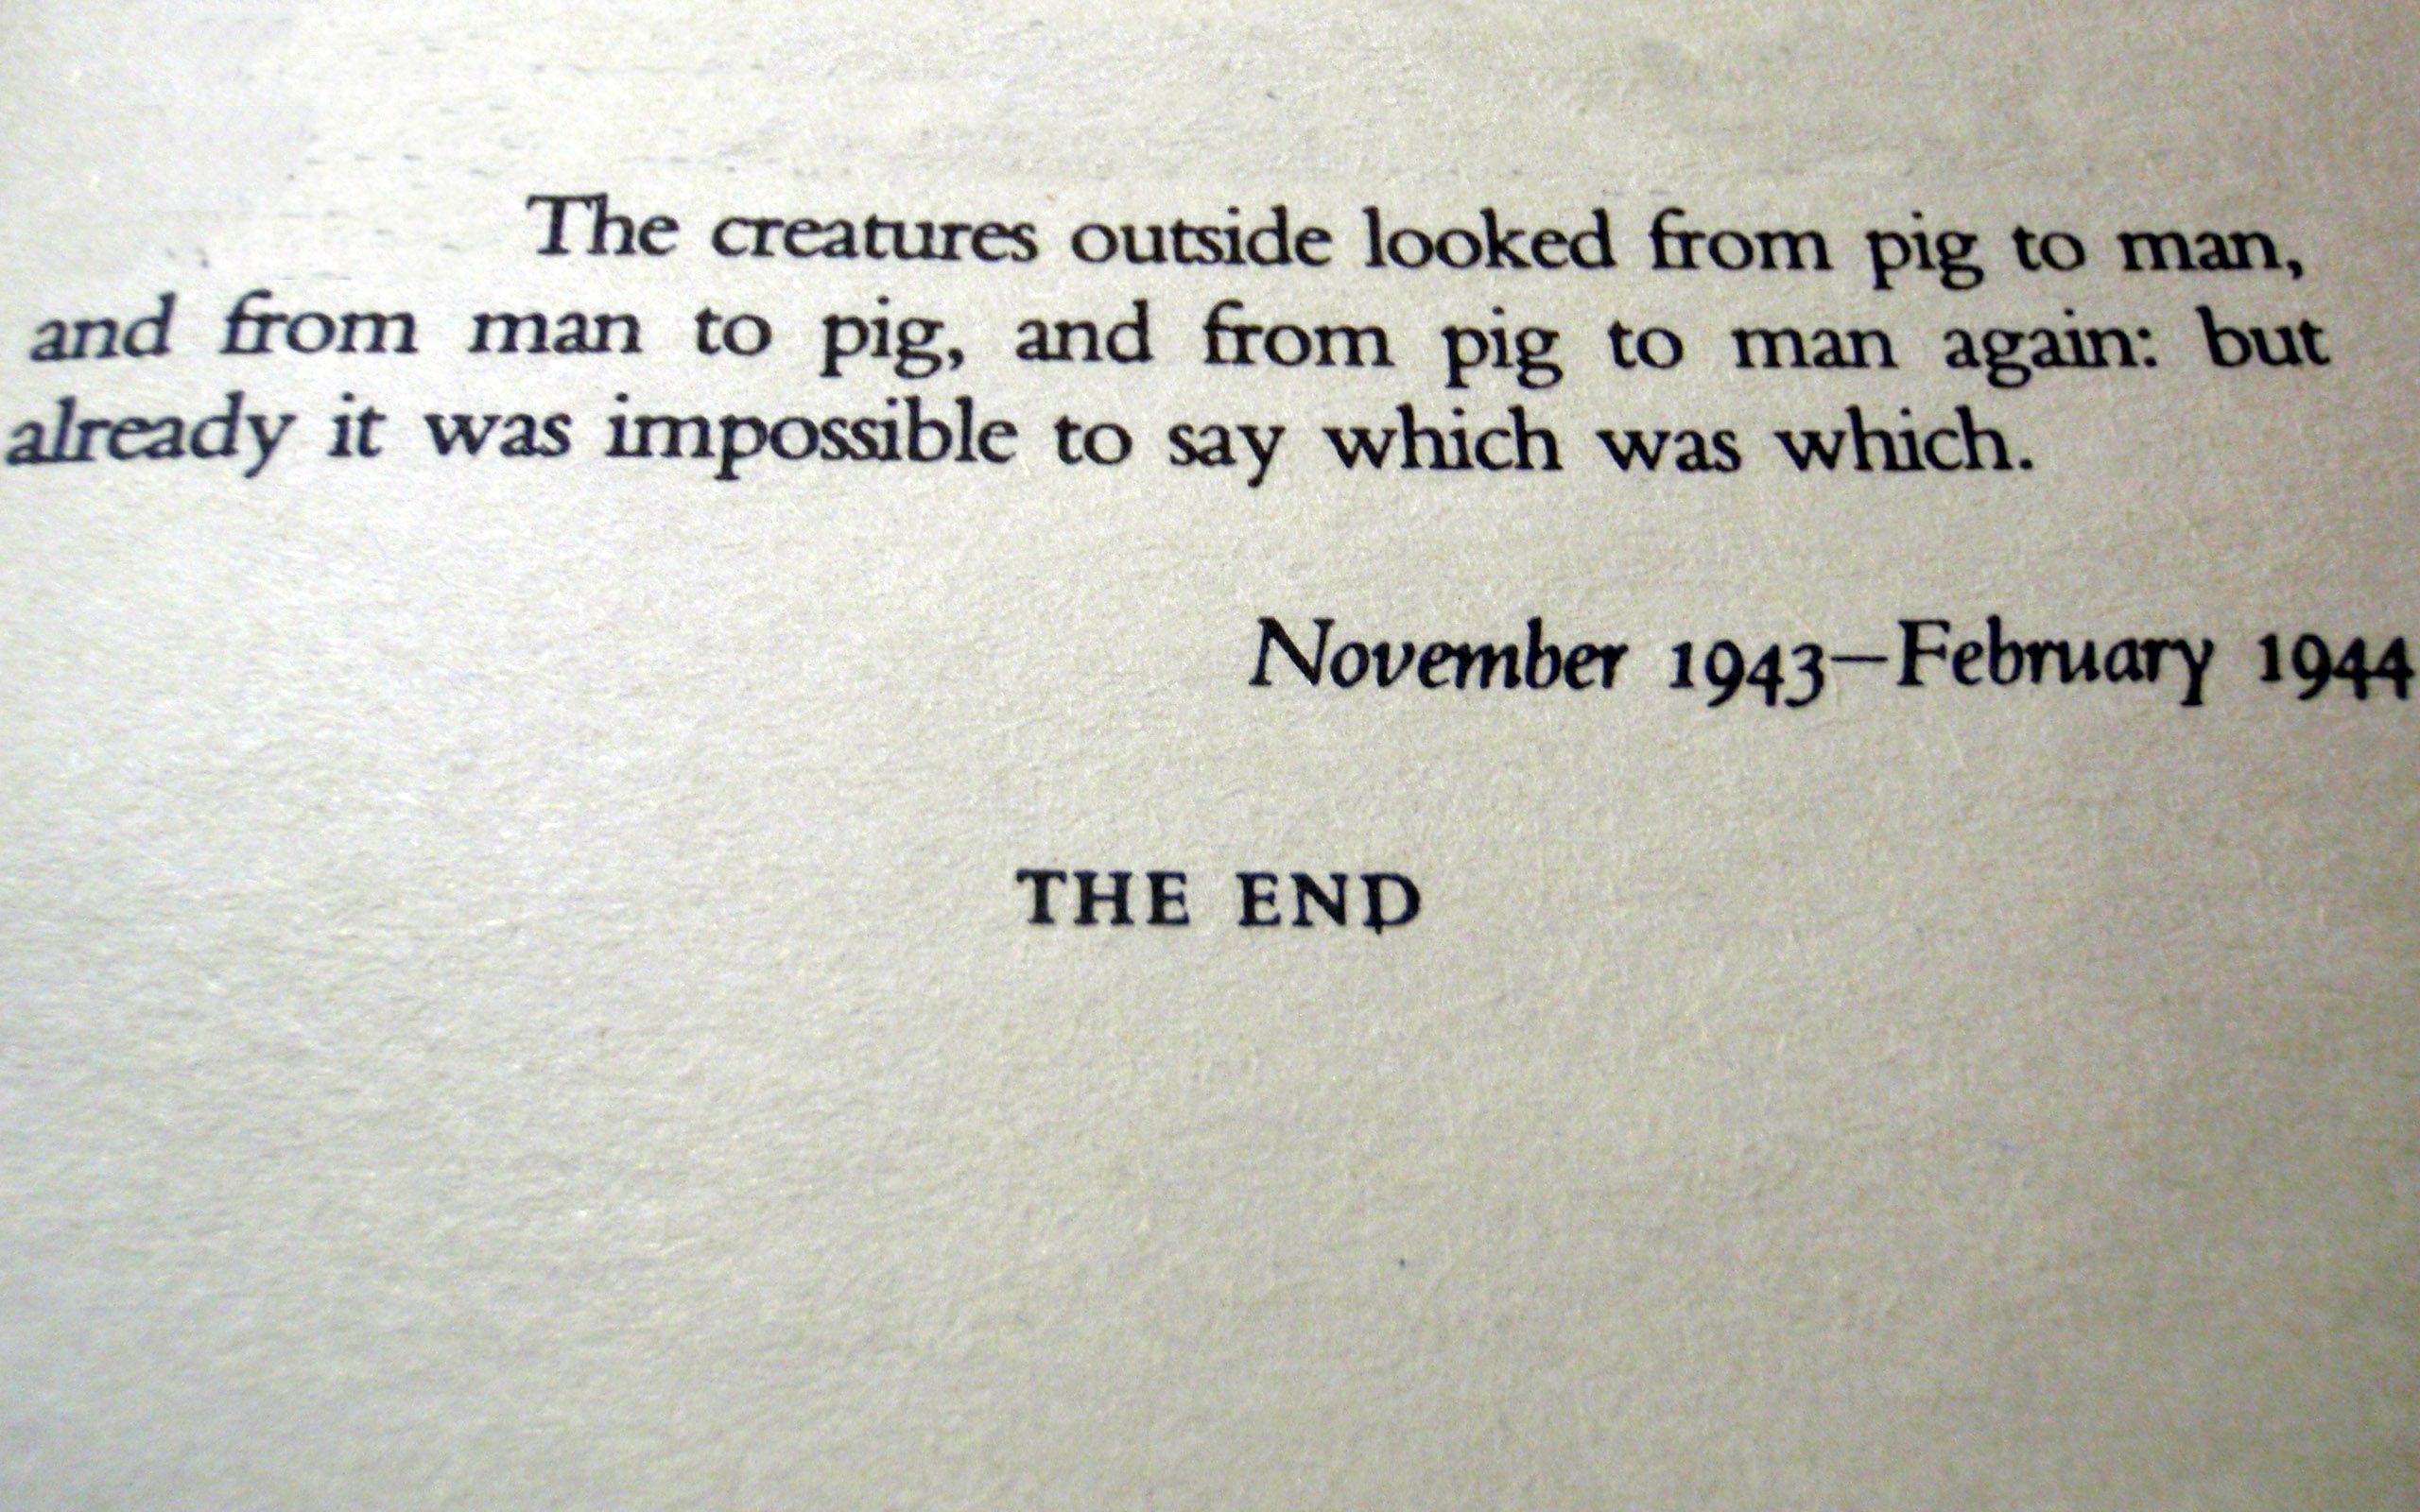 Animal Farm Quotes | Animal Farm George Orwell Books Quotes Typewriters Wallpaper